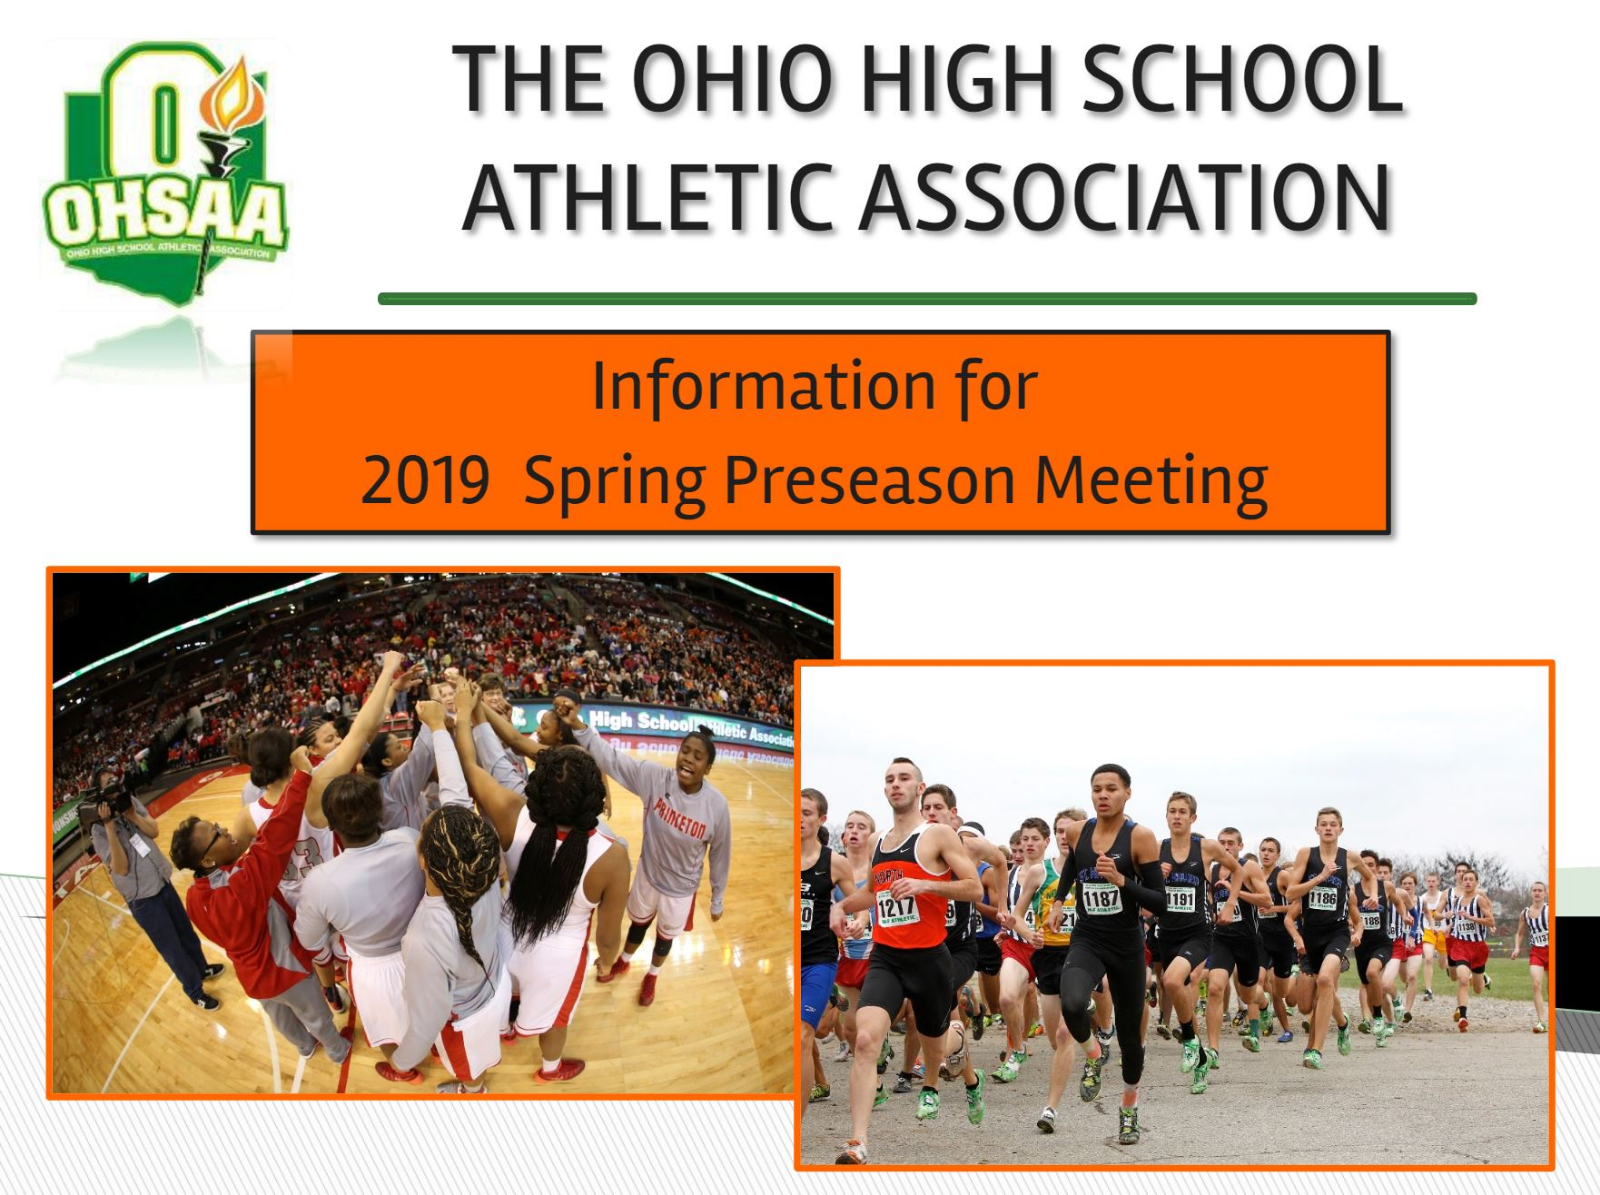 INFORMATION FOR 2018-19 SPRING PRESEASON MEETING